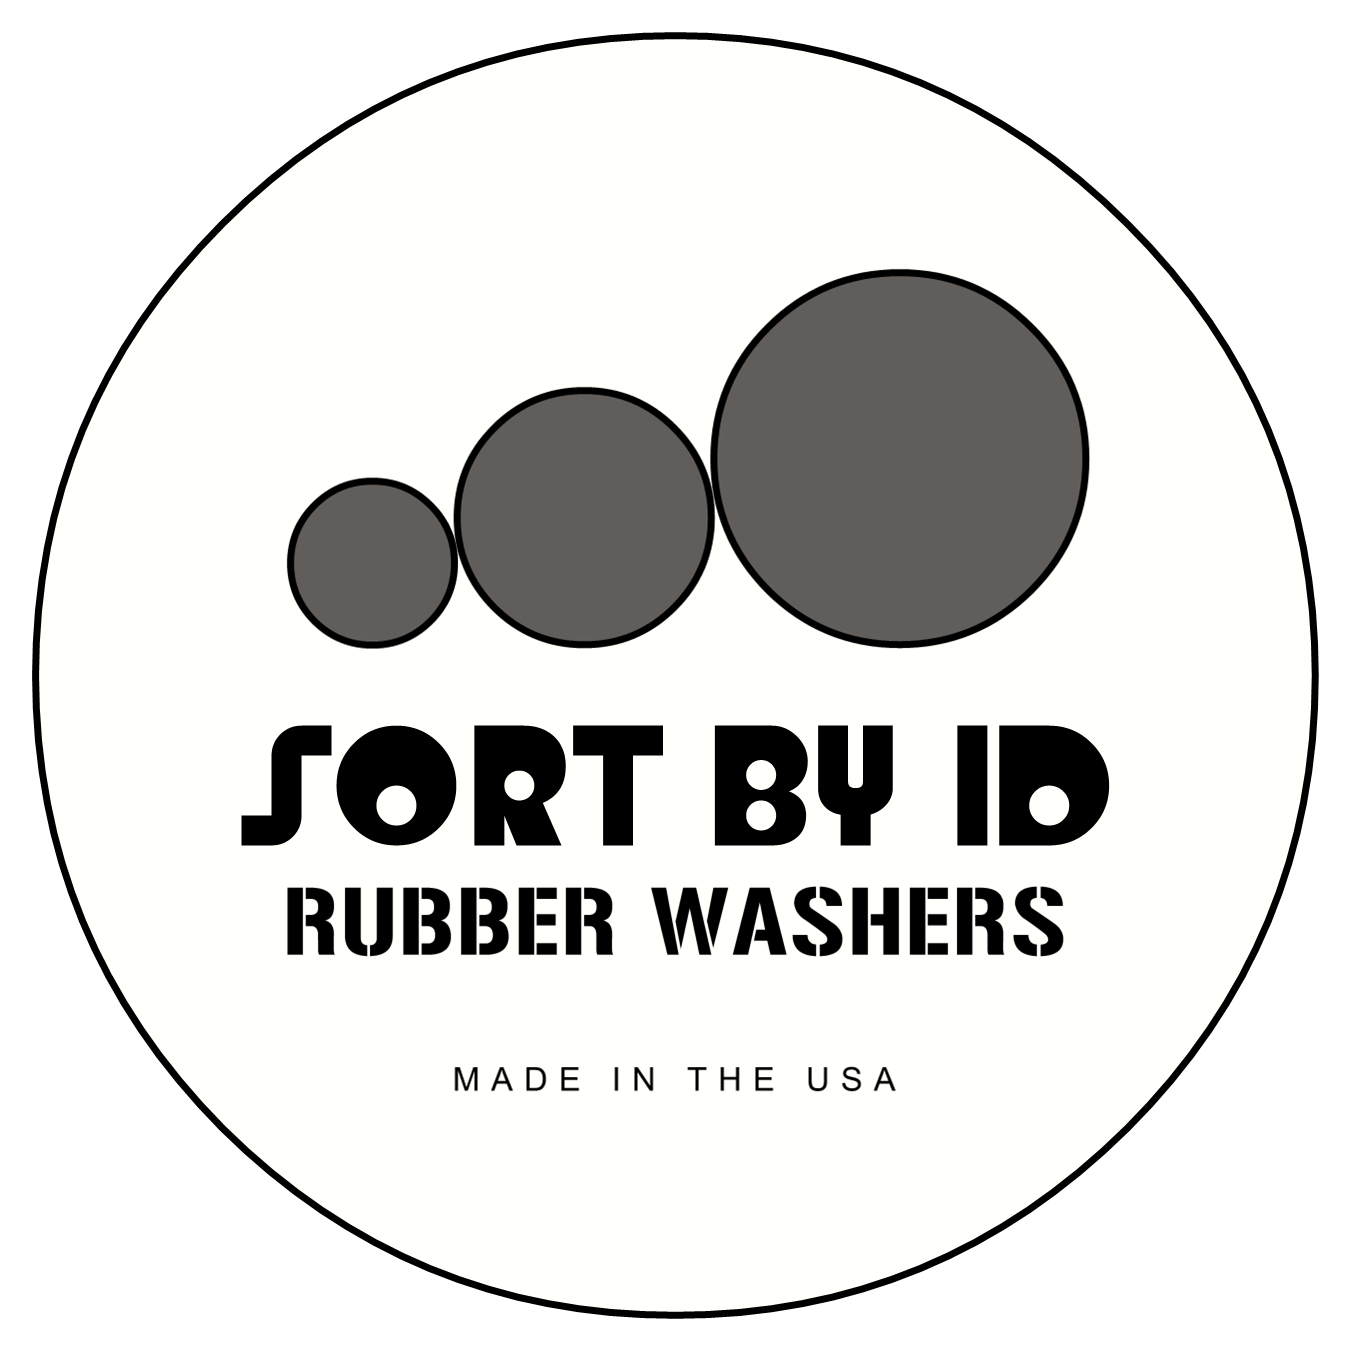 Tiny) Rubber Washers - 1/4